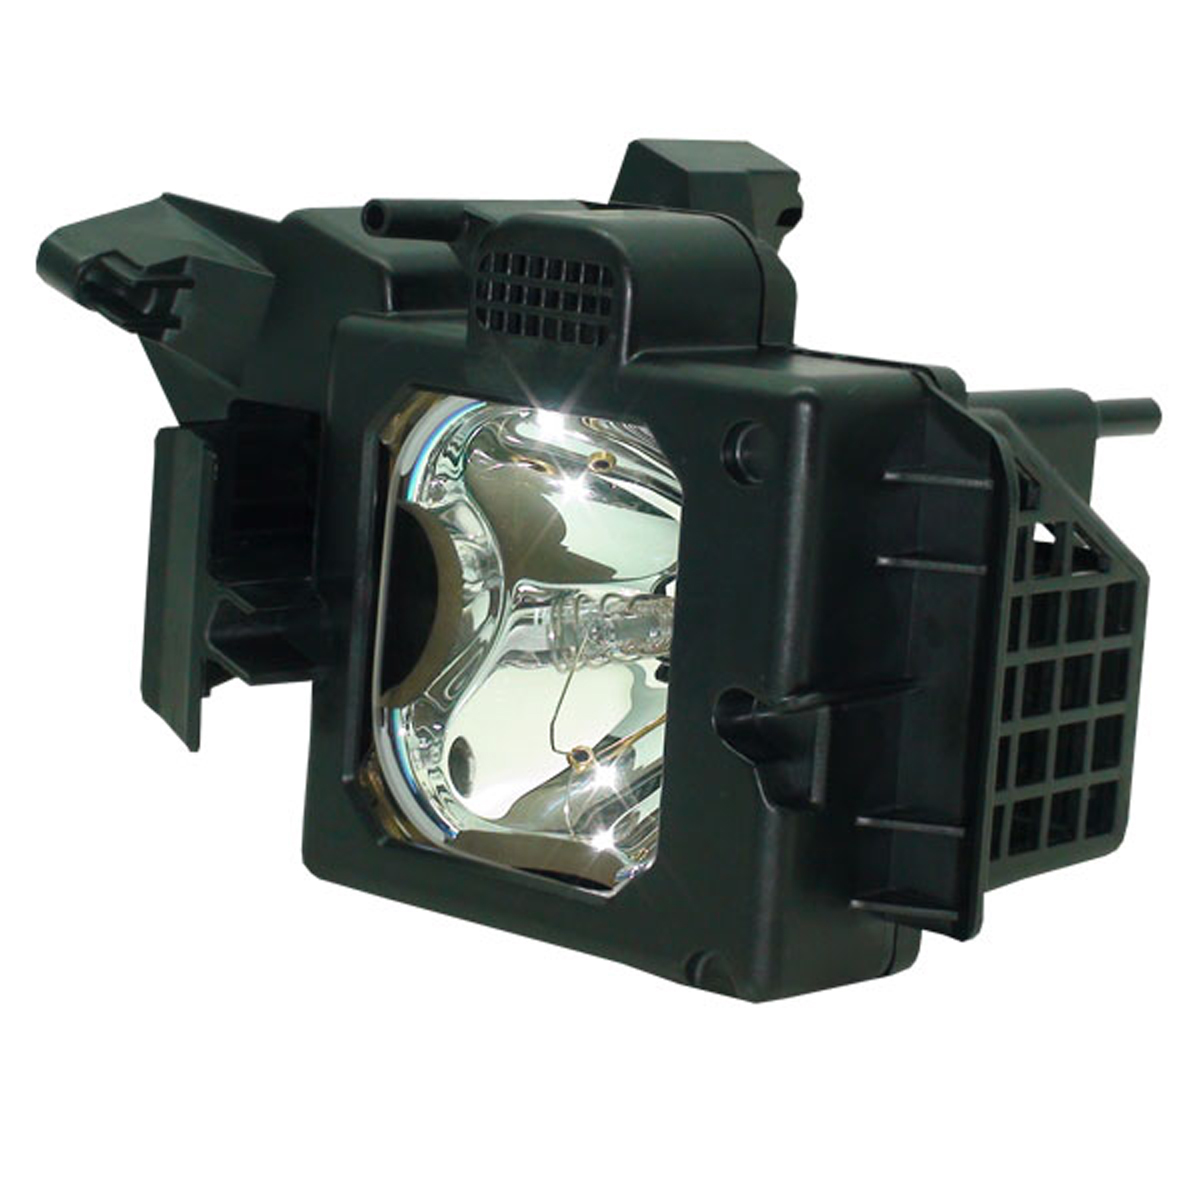 Sony XL-5000 TV Lamp